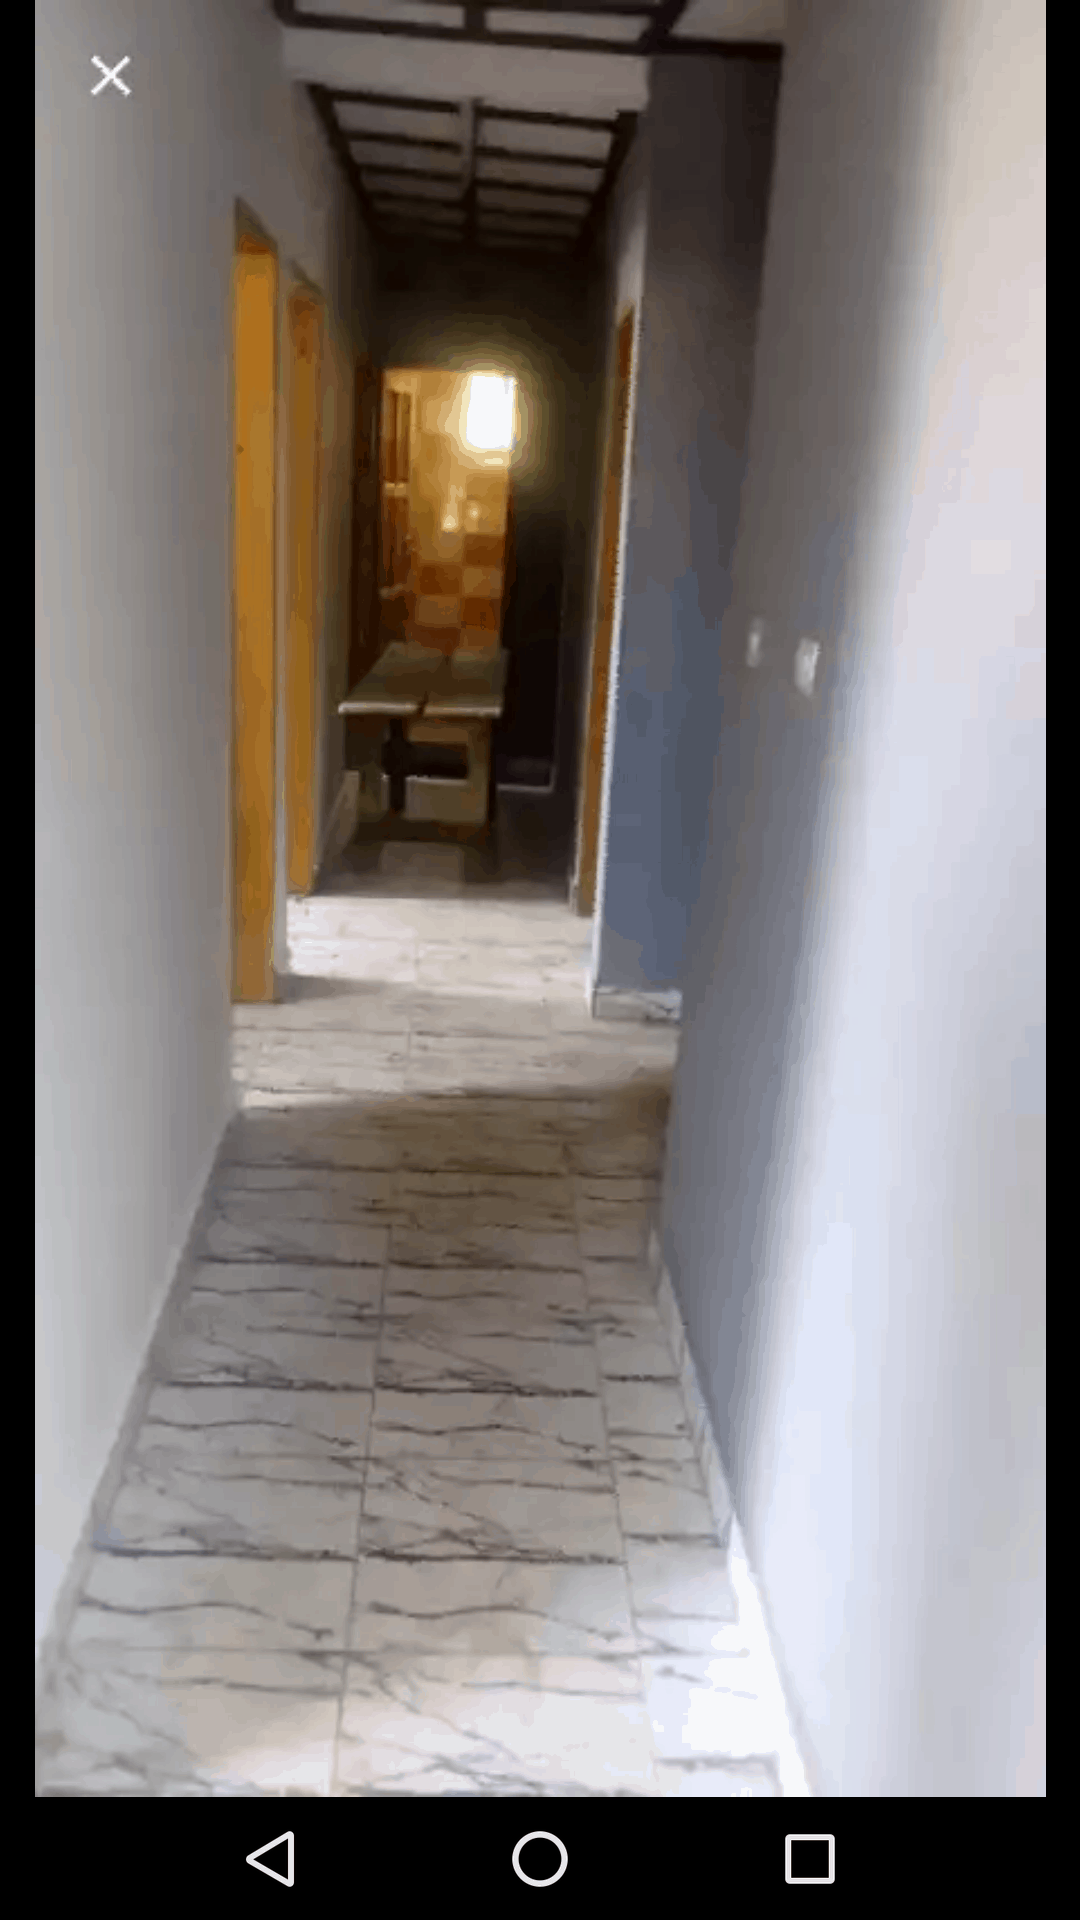 Apartment to rent - Yaoundé, Oyom-Abang, Camps sonnel - 1 living room(s), 3 bedroom(s), 2 bathroom(s) - 90 000 FCFA / month